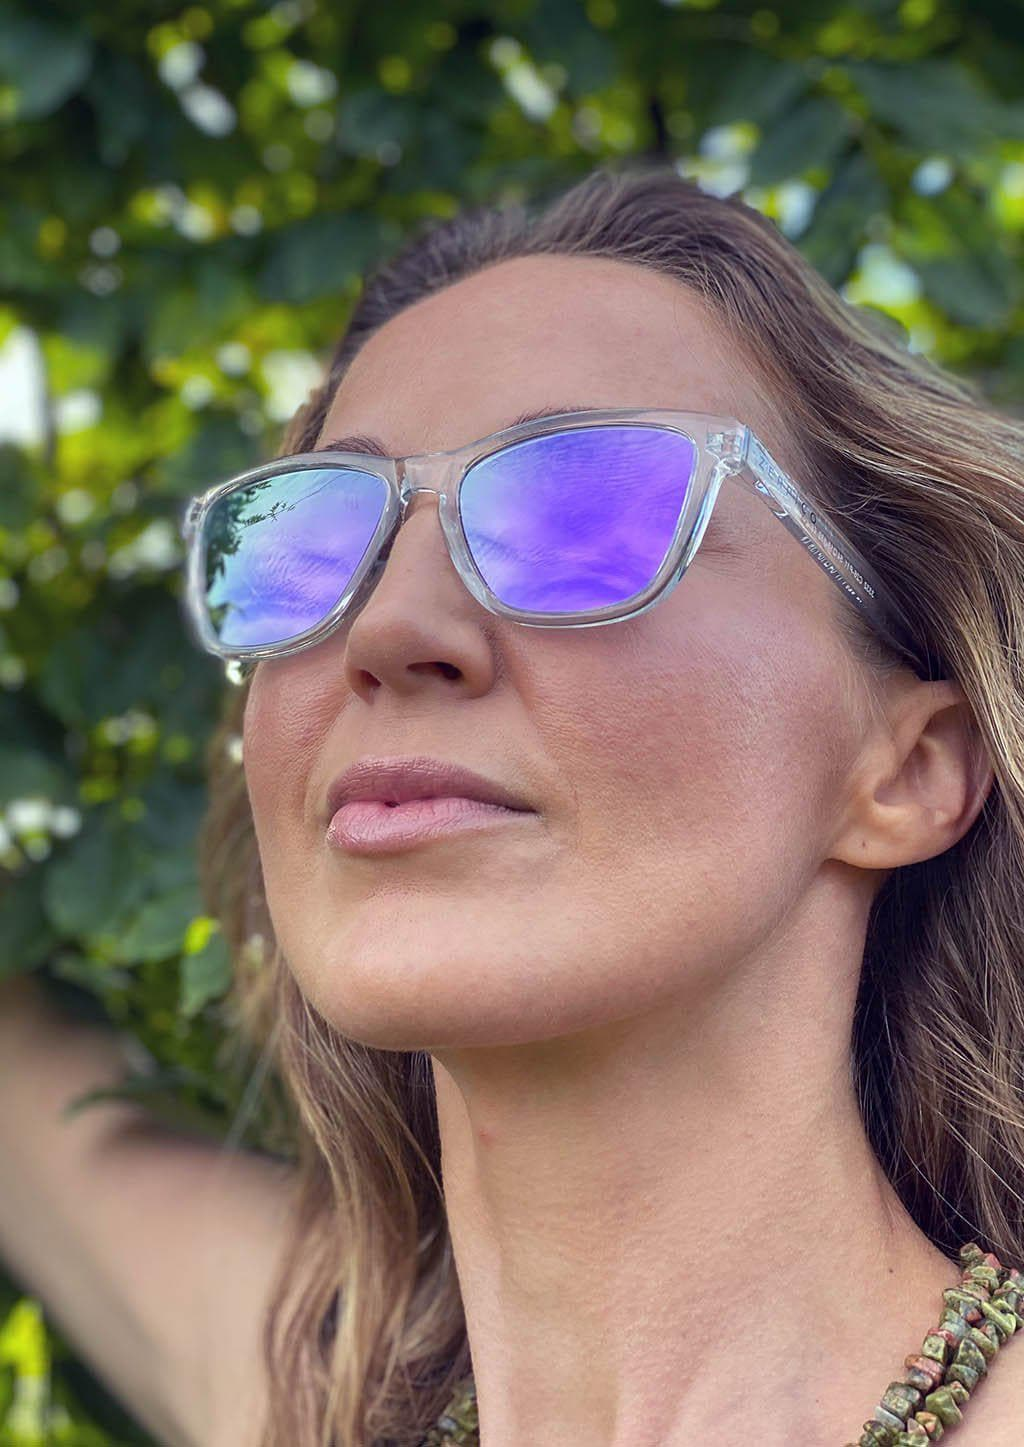 Our Mood V2 is an improved version of our last wayfarers. Plastic body for great quality and durabilty. This is Lucid with transparent frame and purple mirror lenses. From the front on Swedish model.